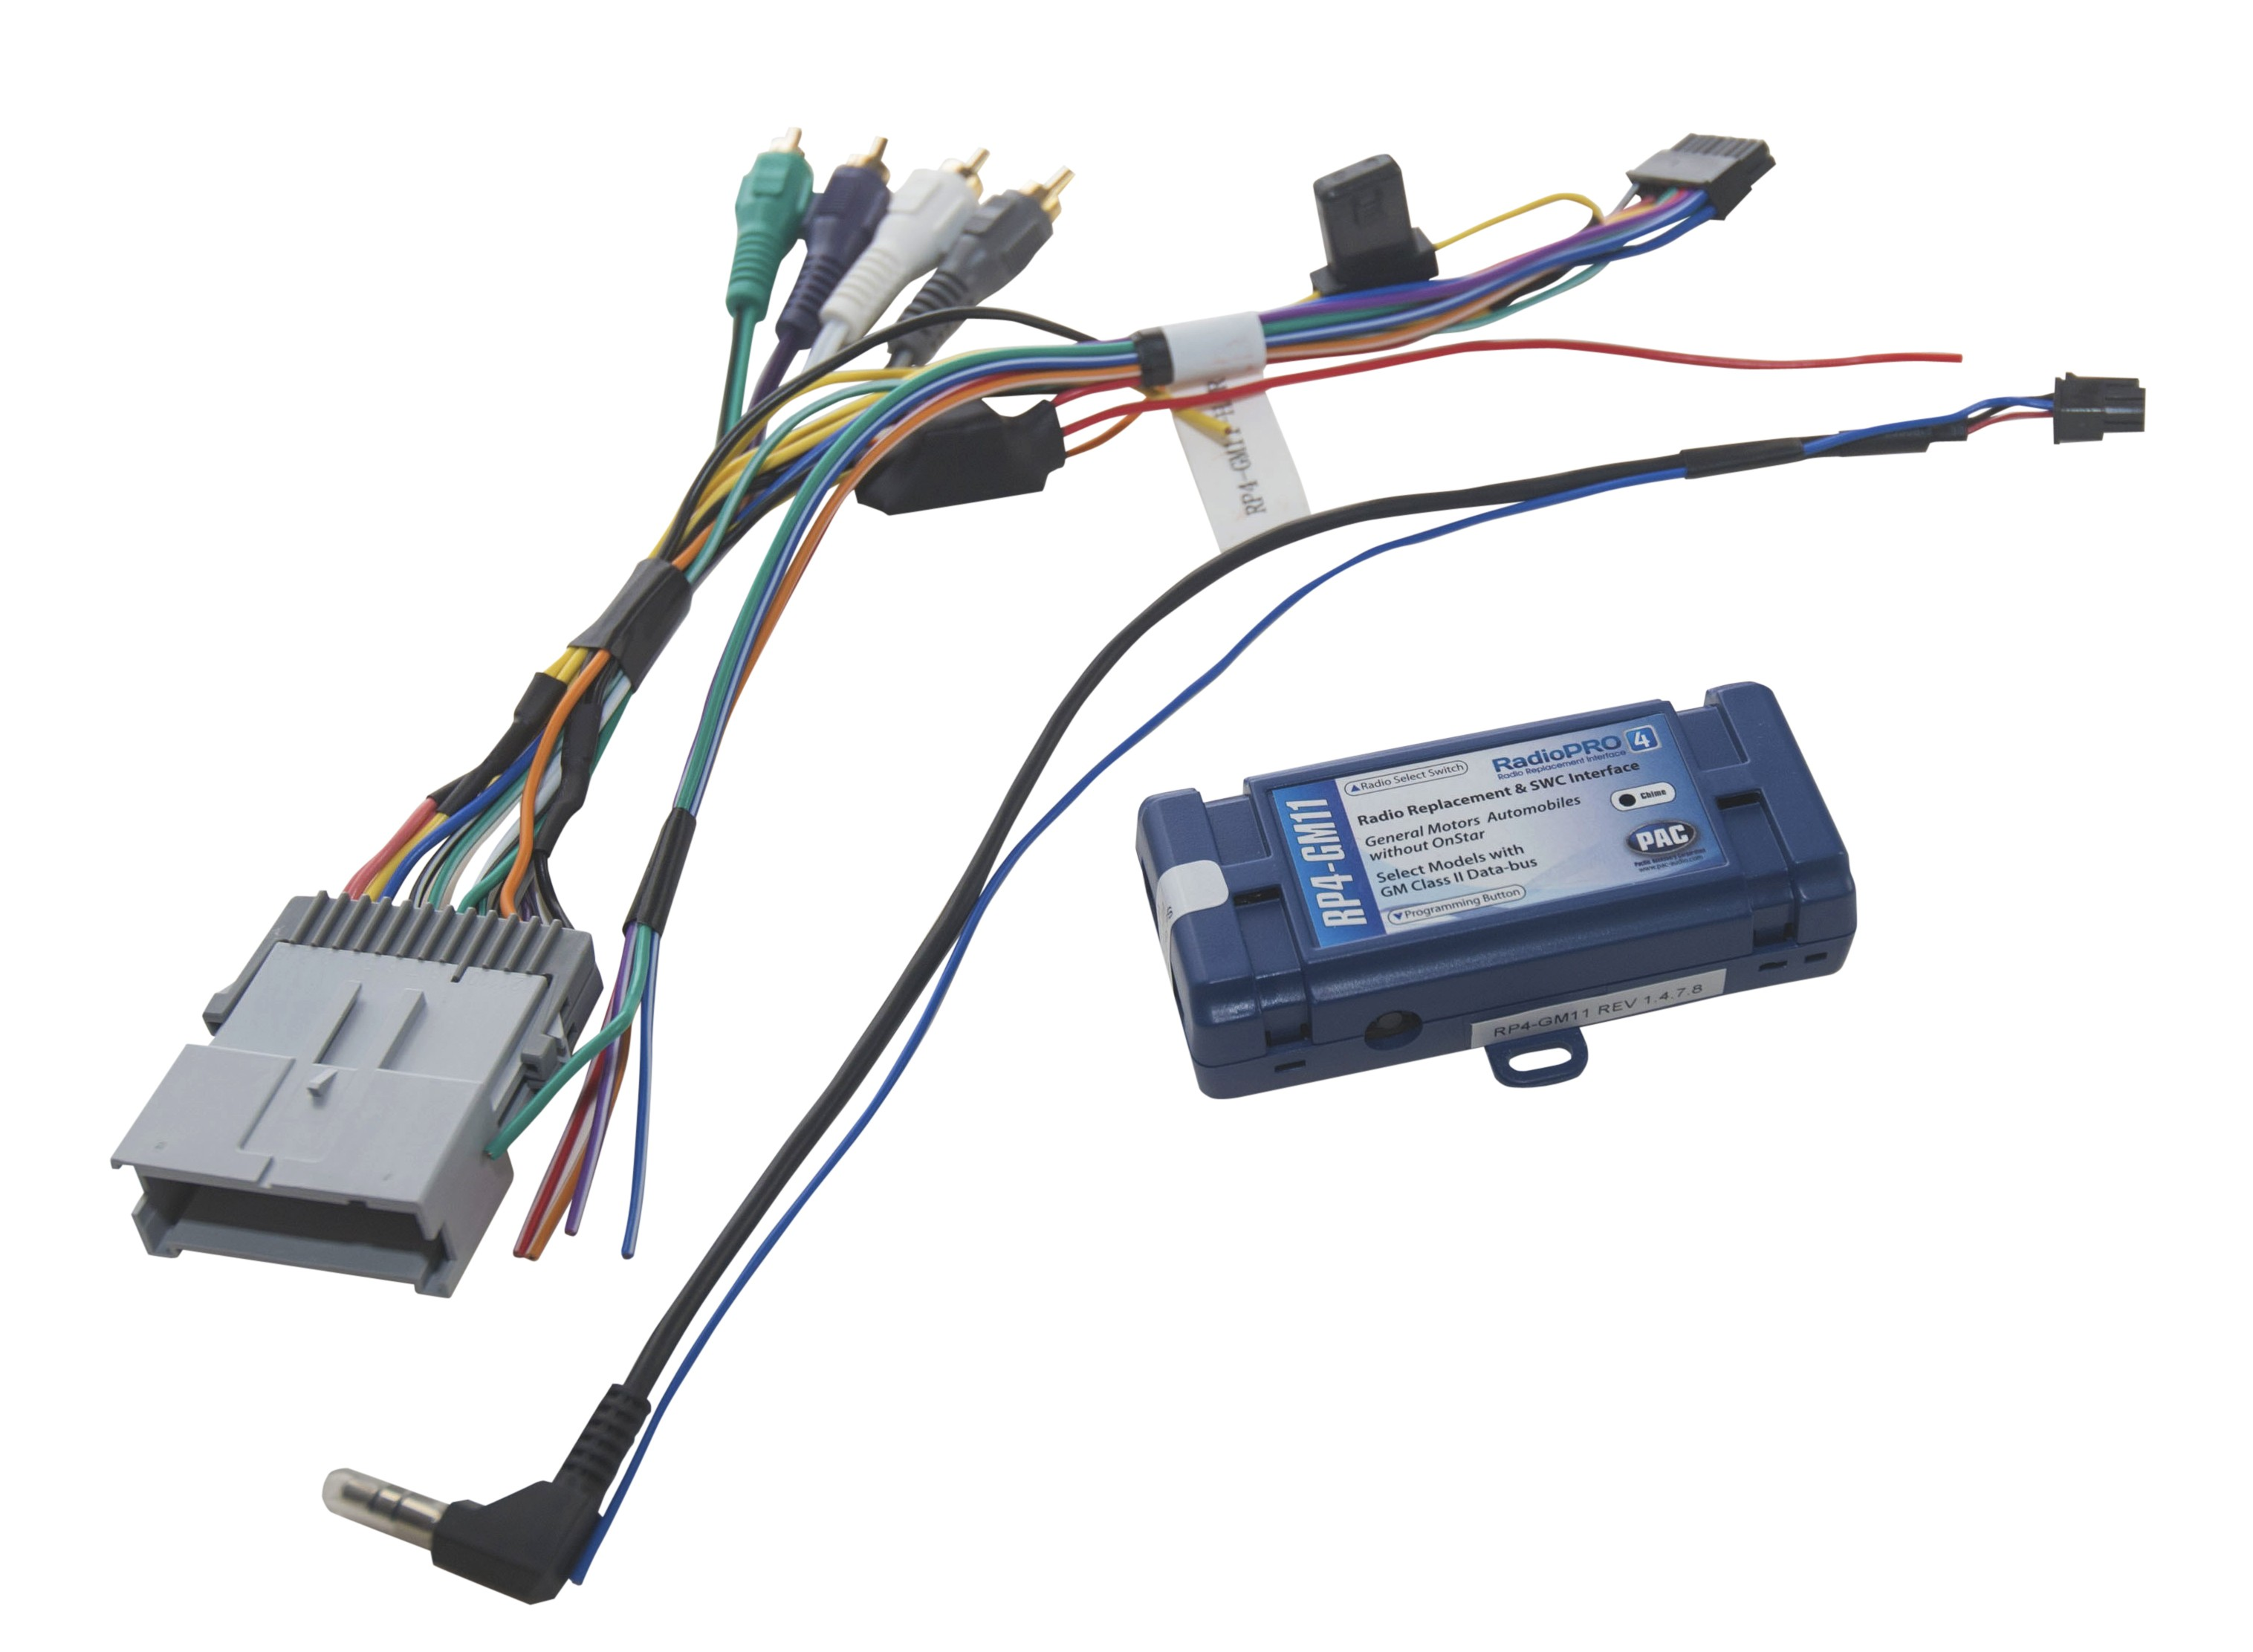 gm radio chime interface wiring diagram radiopro4 interface for general motors vehicles with class ii data  interface for general motors vehicles